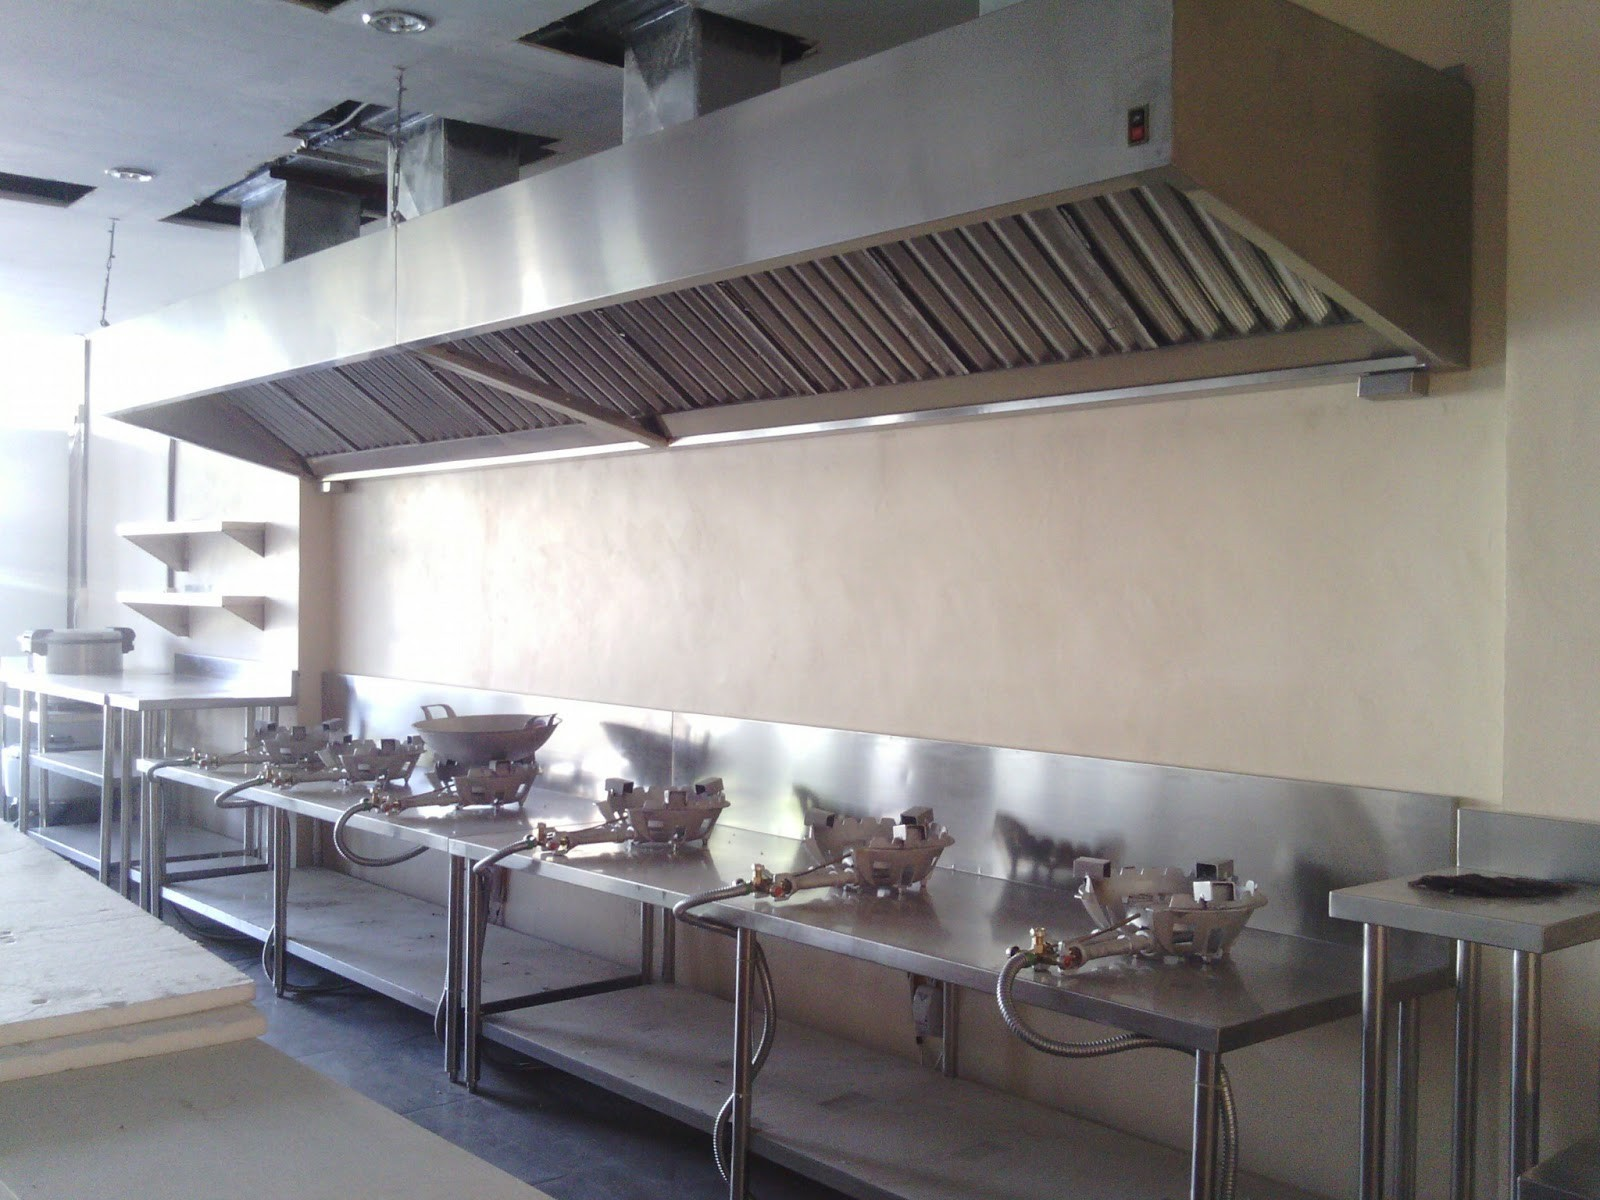 CVMANDIRI KITCHEN PERKASA